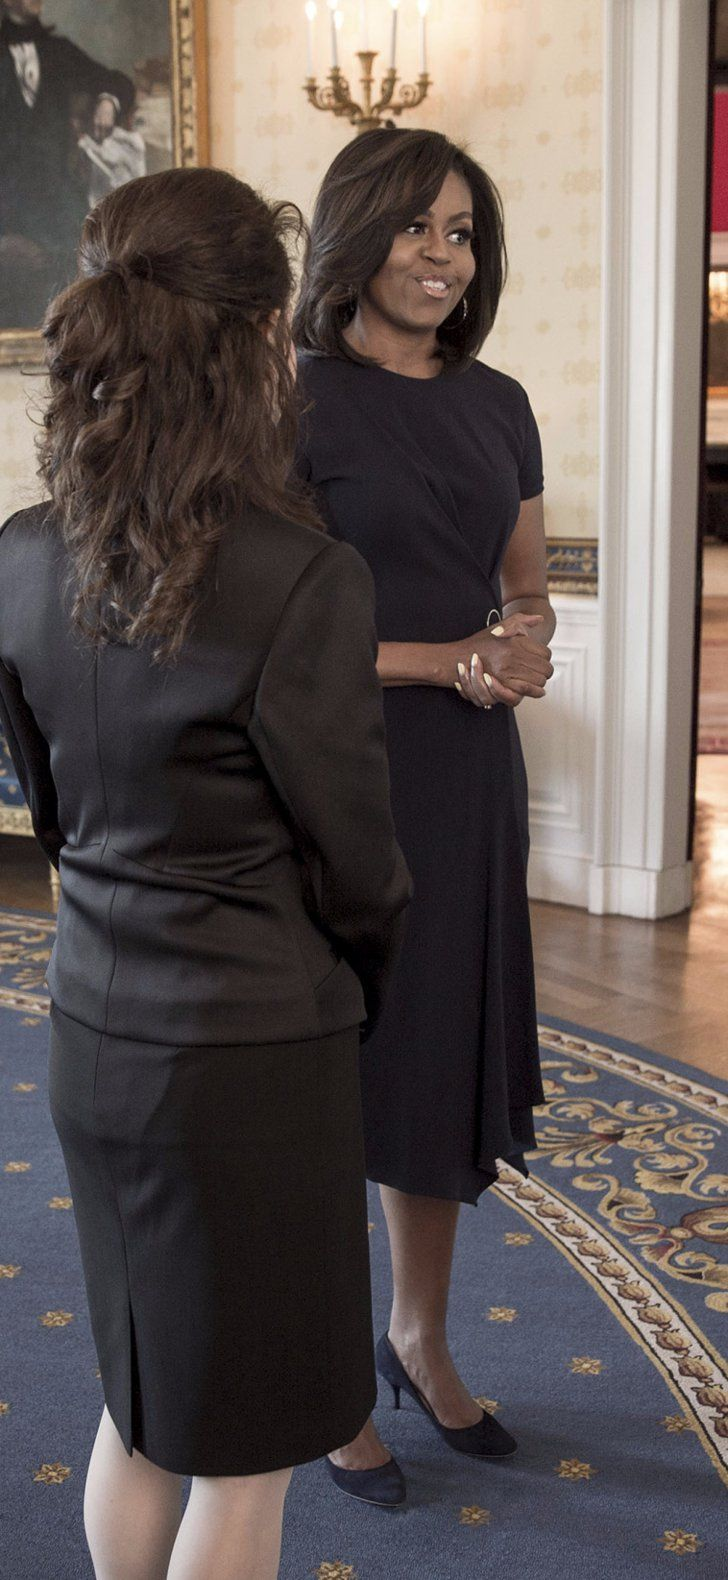 Michelle Obama's NCIS Dress Proves She Has What It Takes to Become a True TV Star